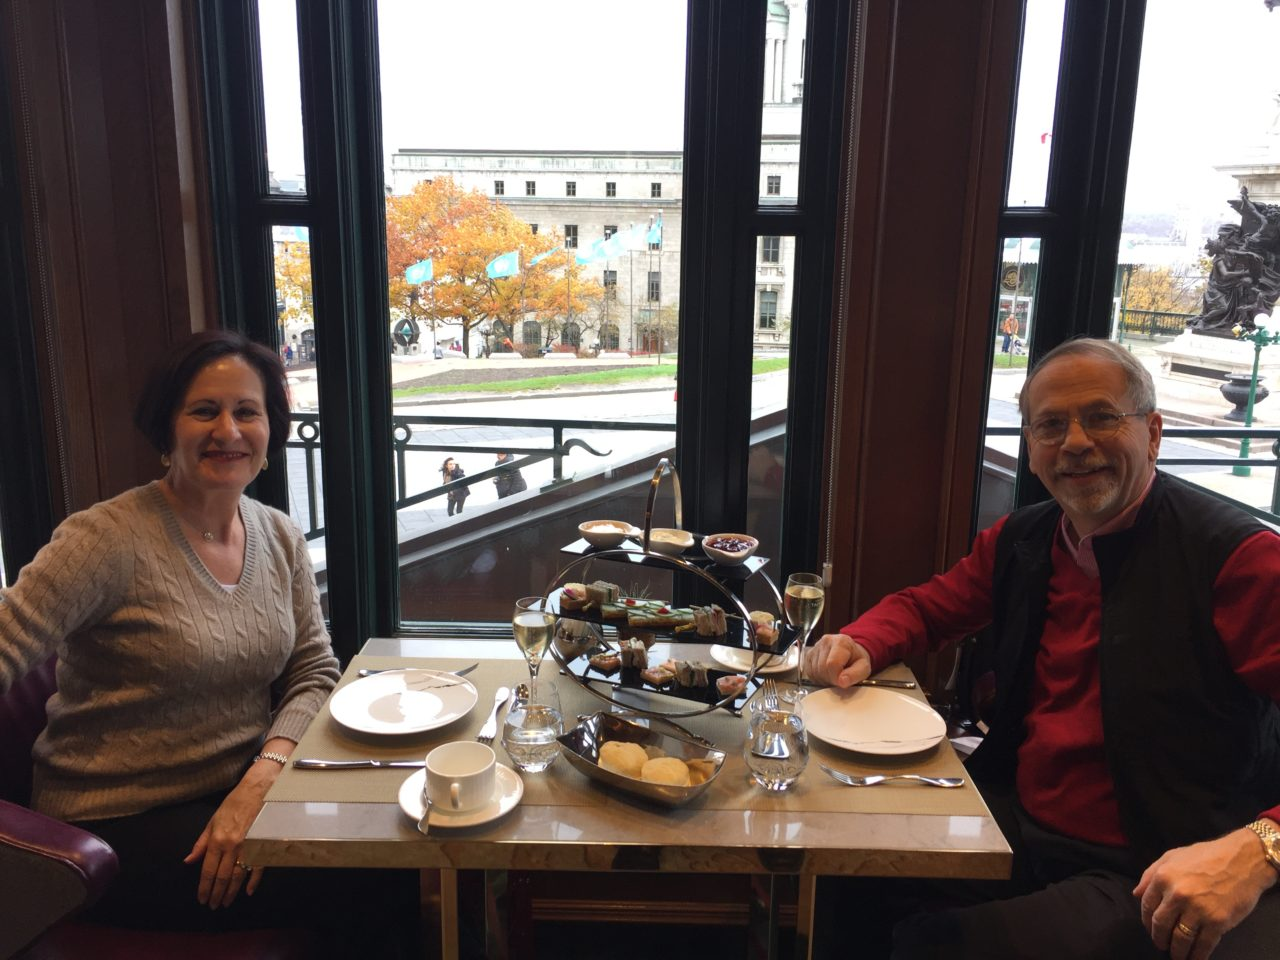 Afternoon Tea at the Champlain Restaurant of the Fairmont Le Chateau Frontenac